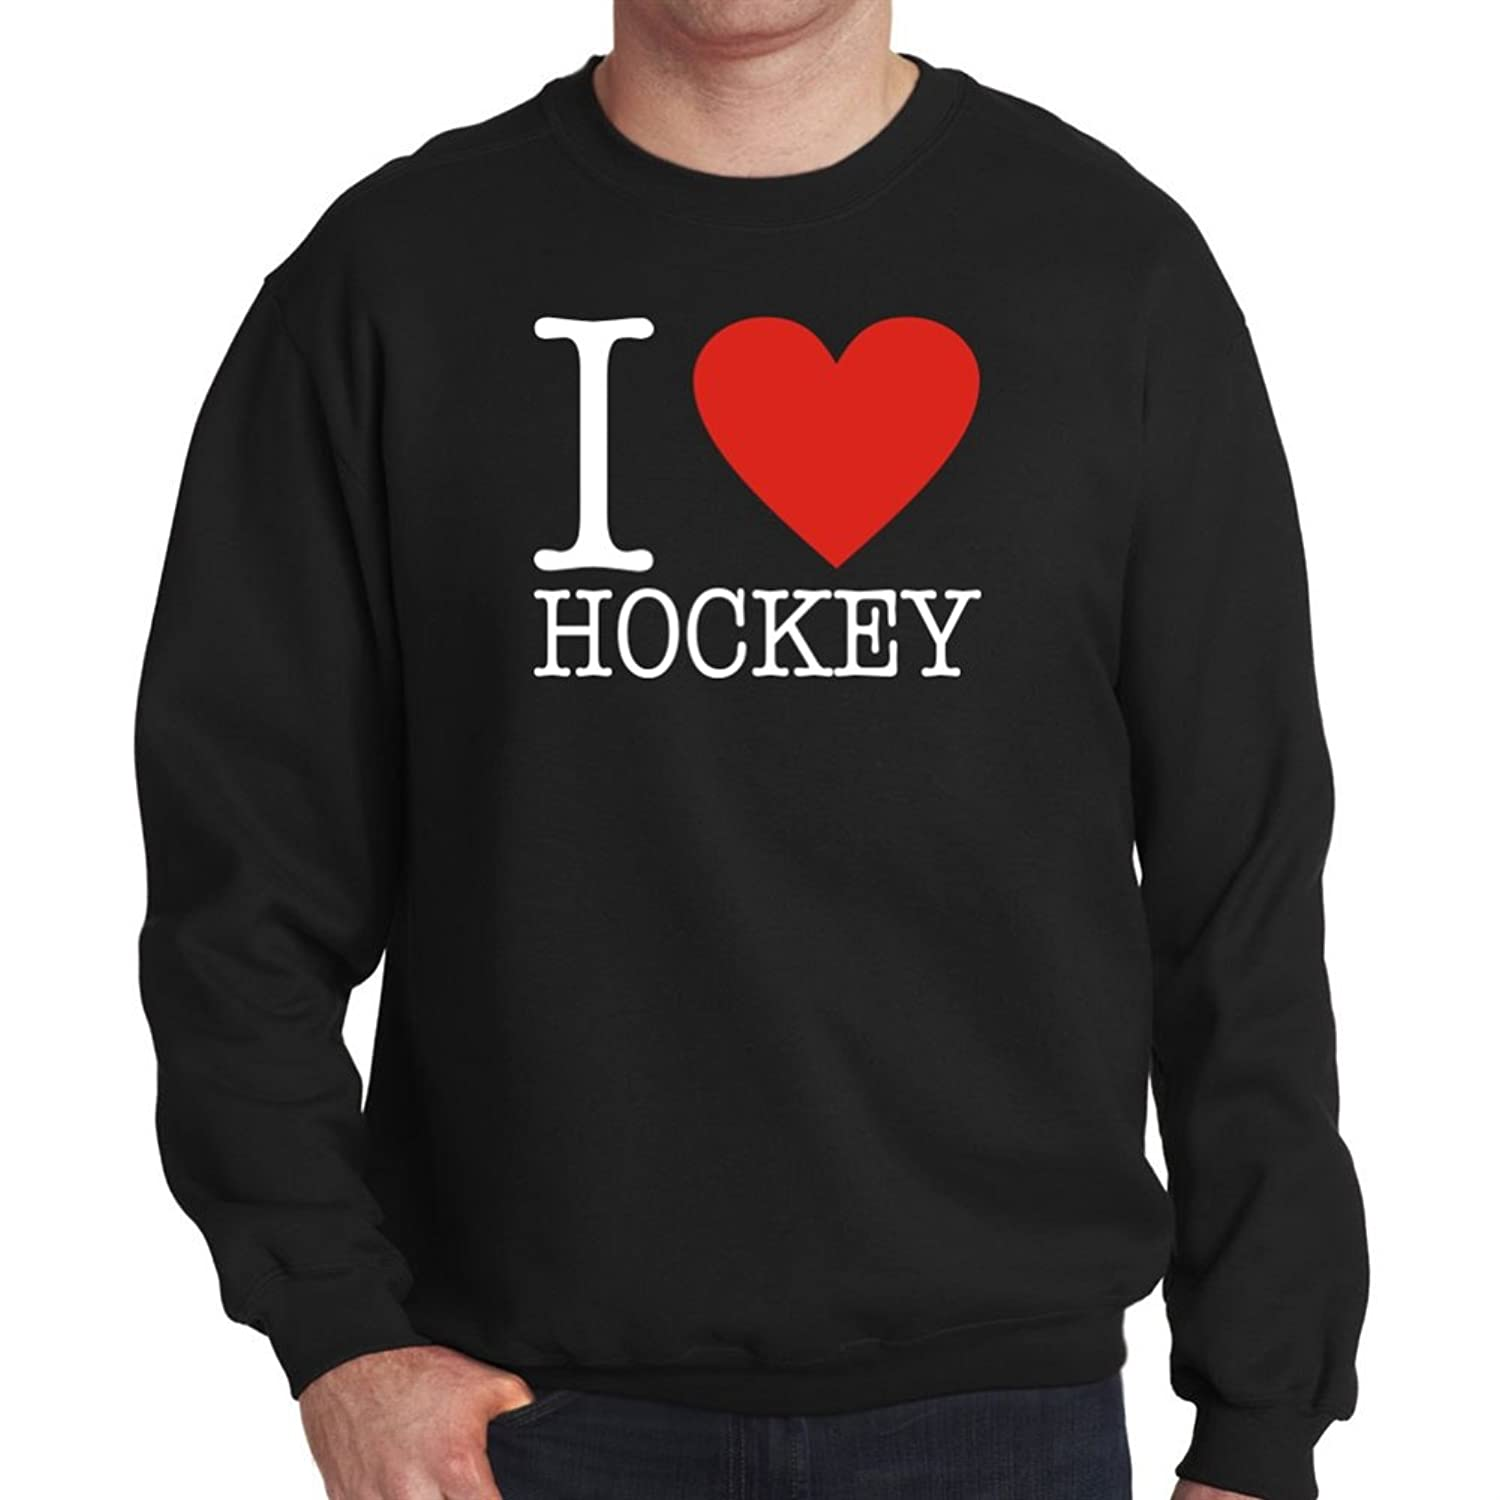 I LOVE Hockey CLASSIC Sweatshirt